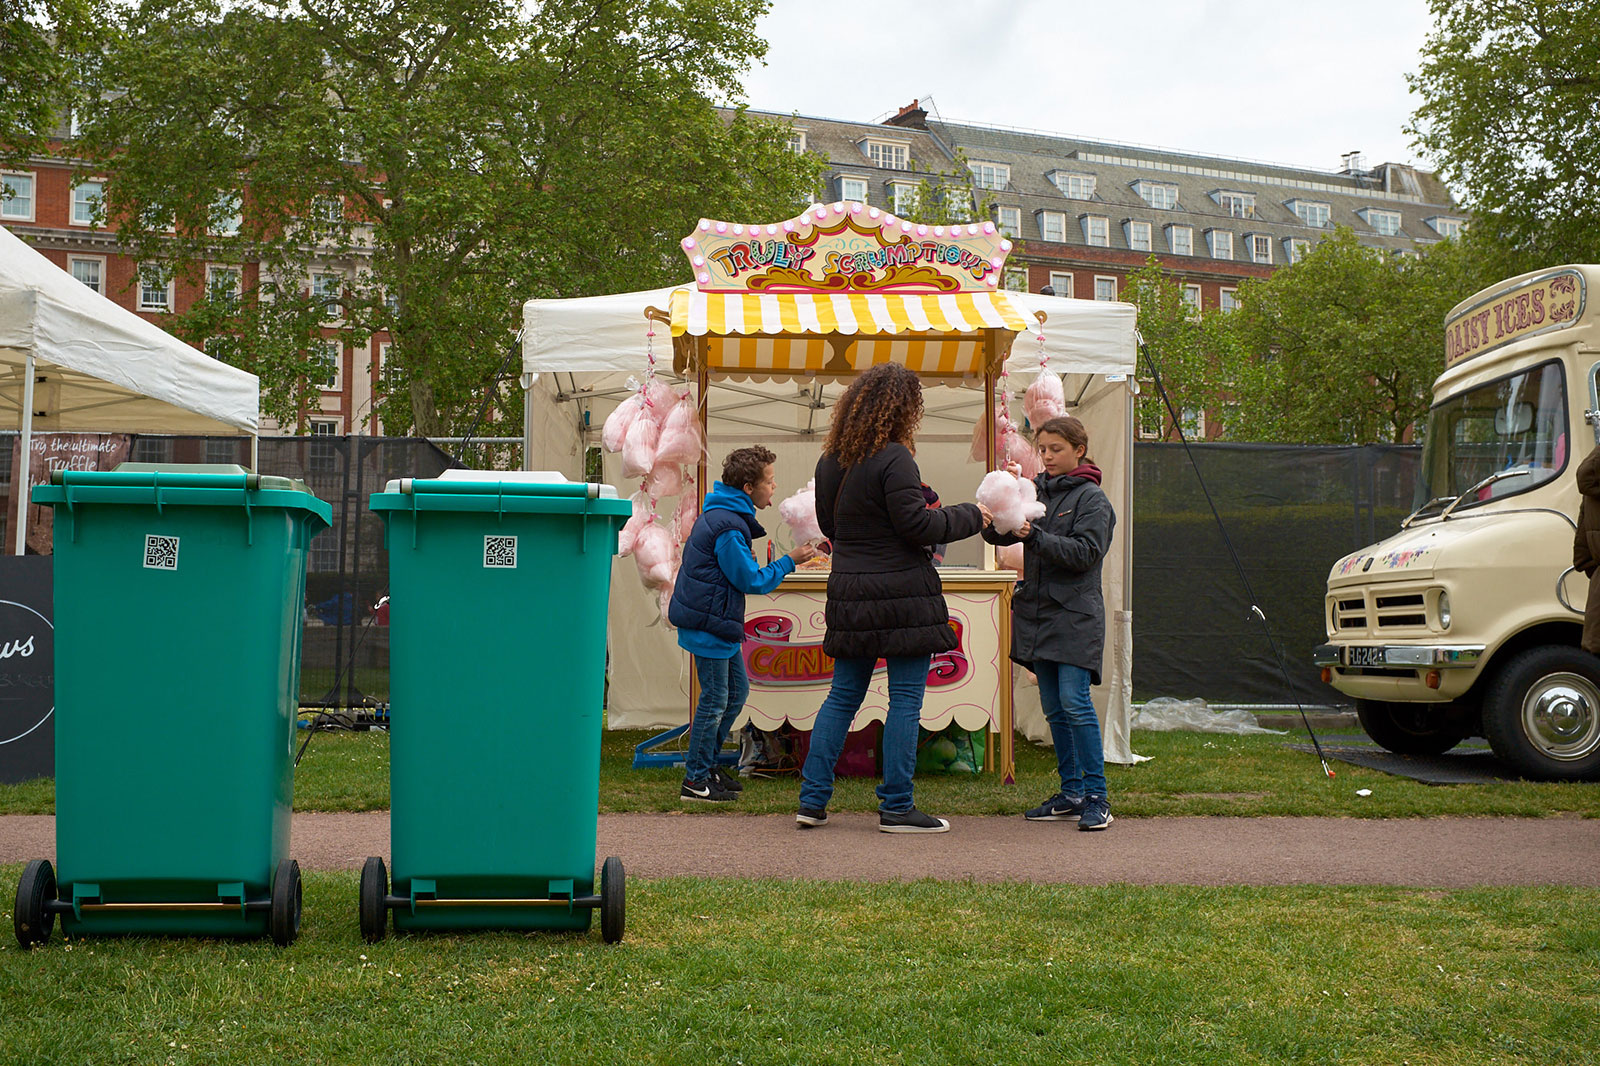 The perfect day for candy floss.